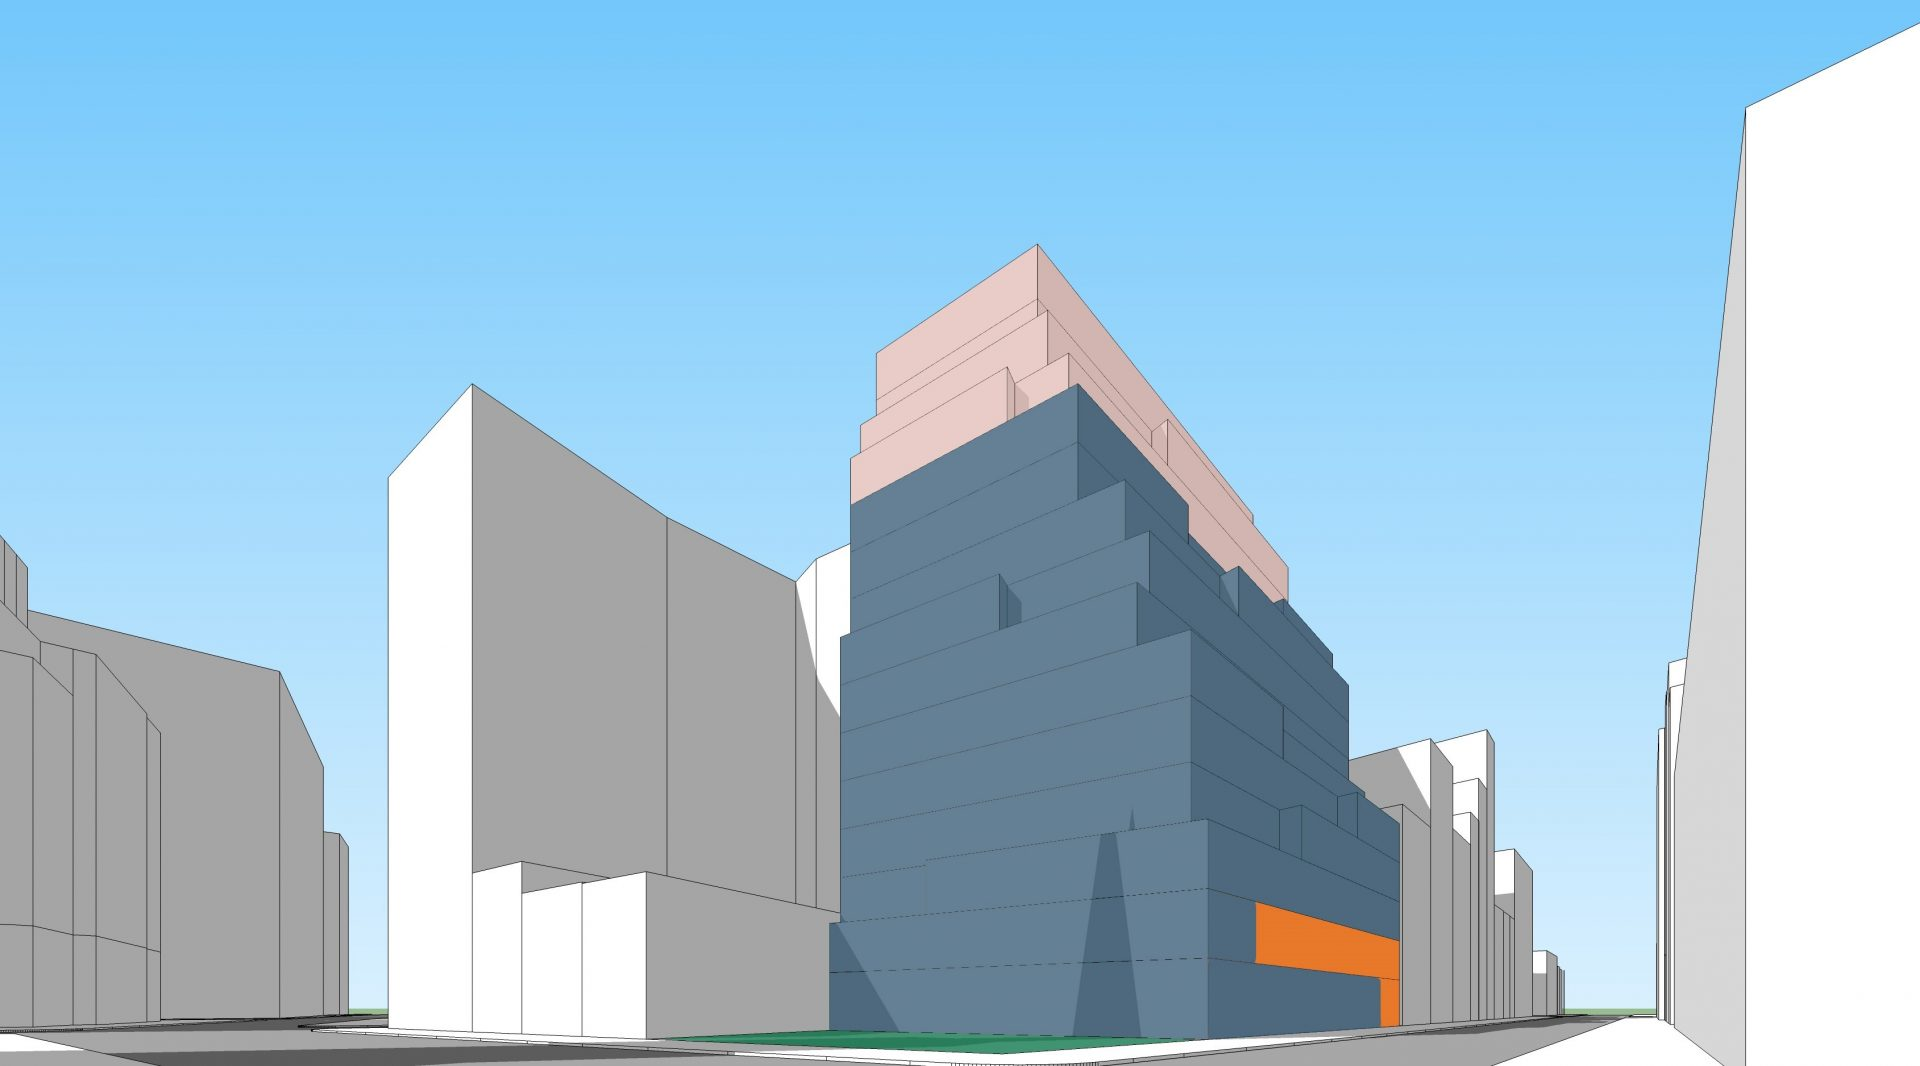 Diagram illustrating the proposed development for the Silicon Alley office building